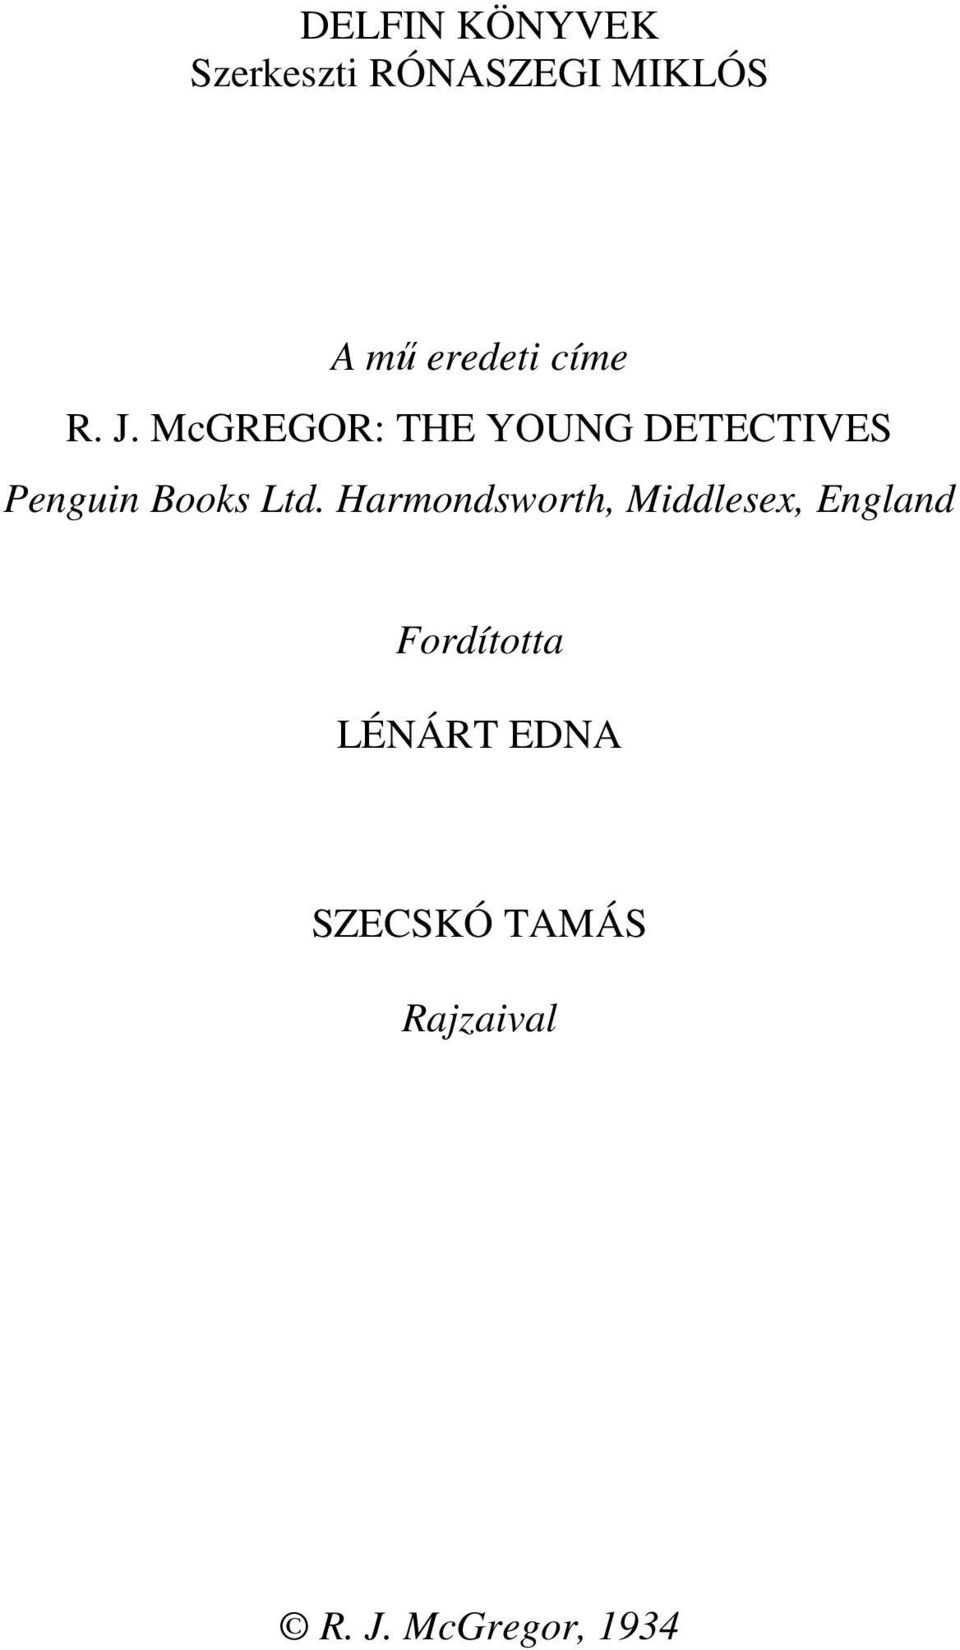 McGREGOR: THE YOUNG DETECTIVES Penguin Books Ltd.